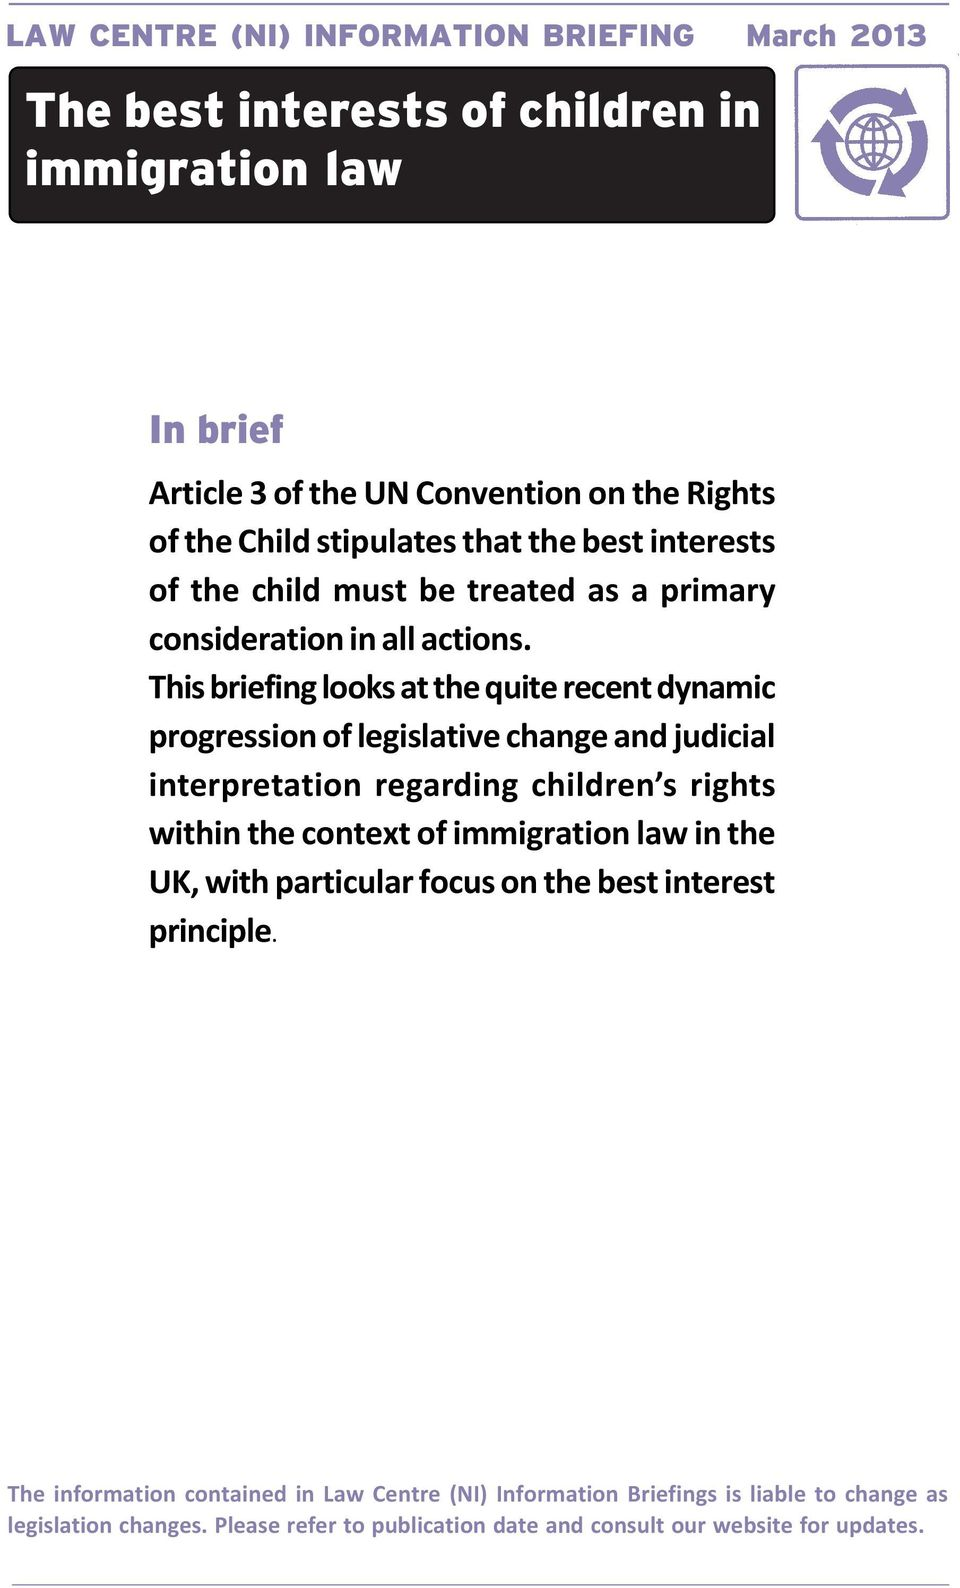 This briefing looks at the quite recent dynamic progression of legislative change and judicial interpretation regarding children s rights within the context of immigration